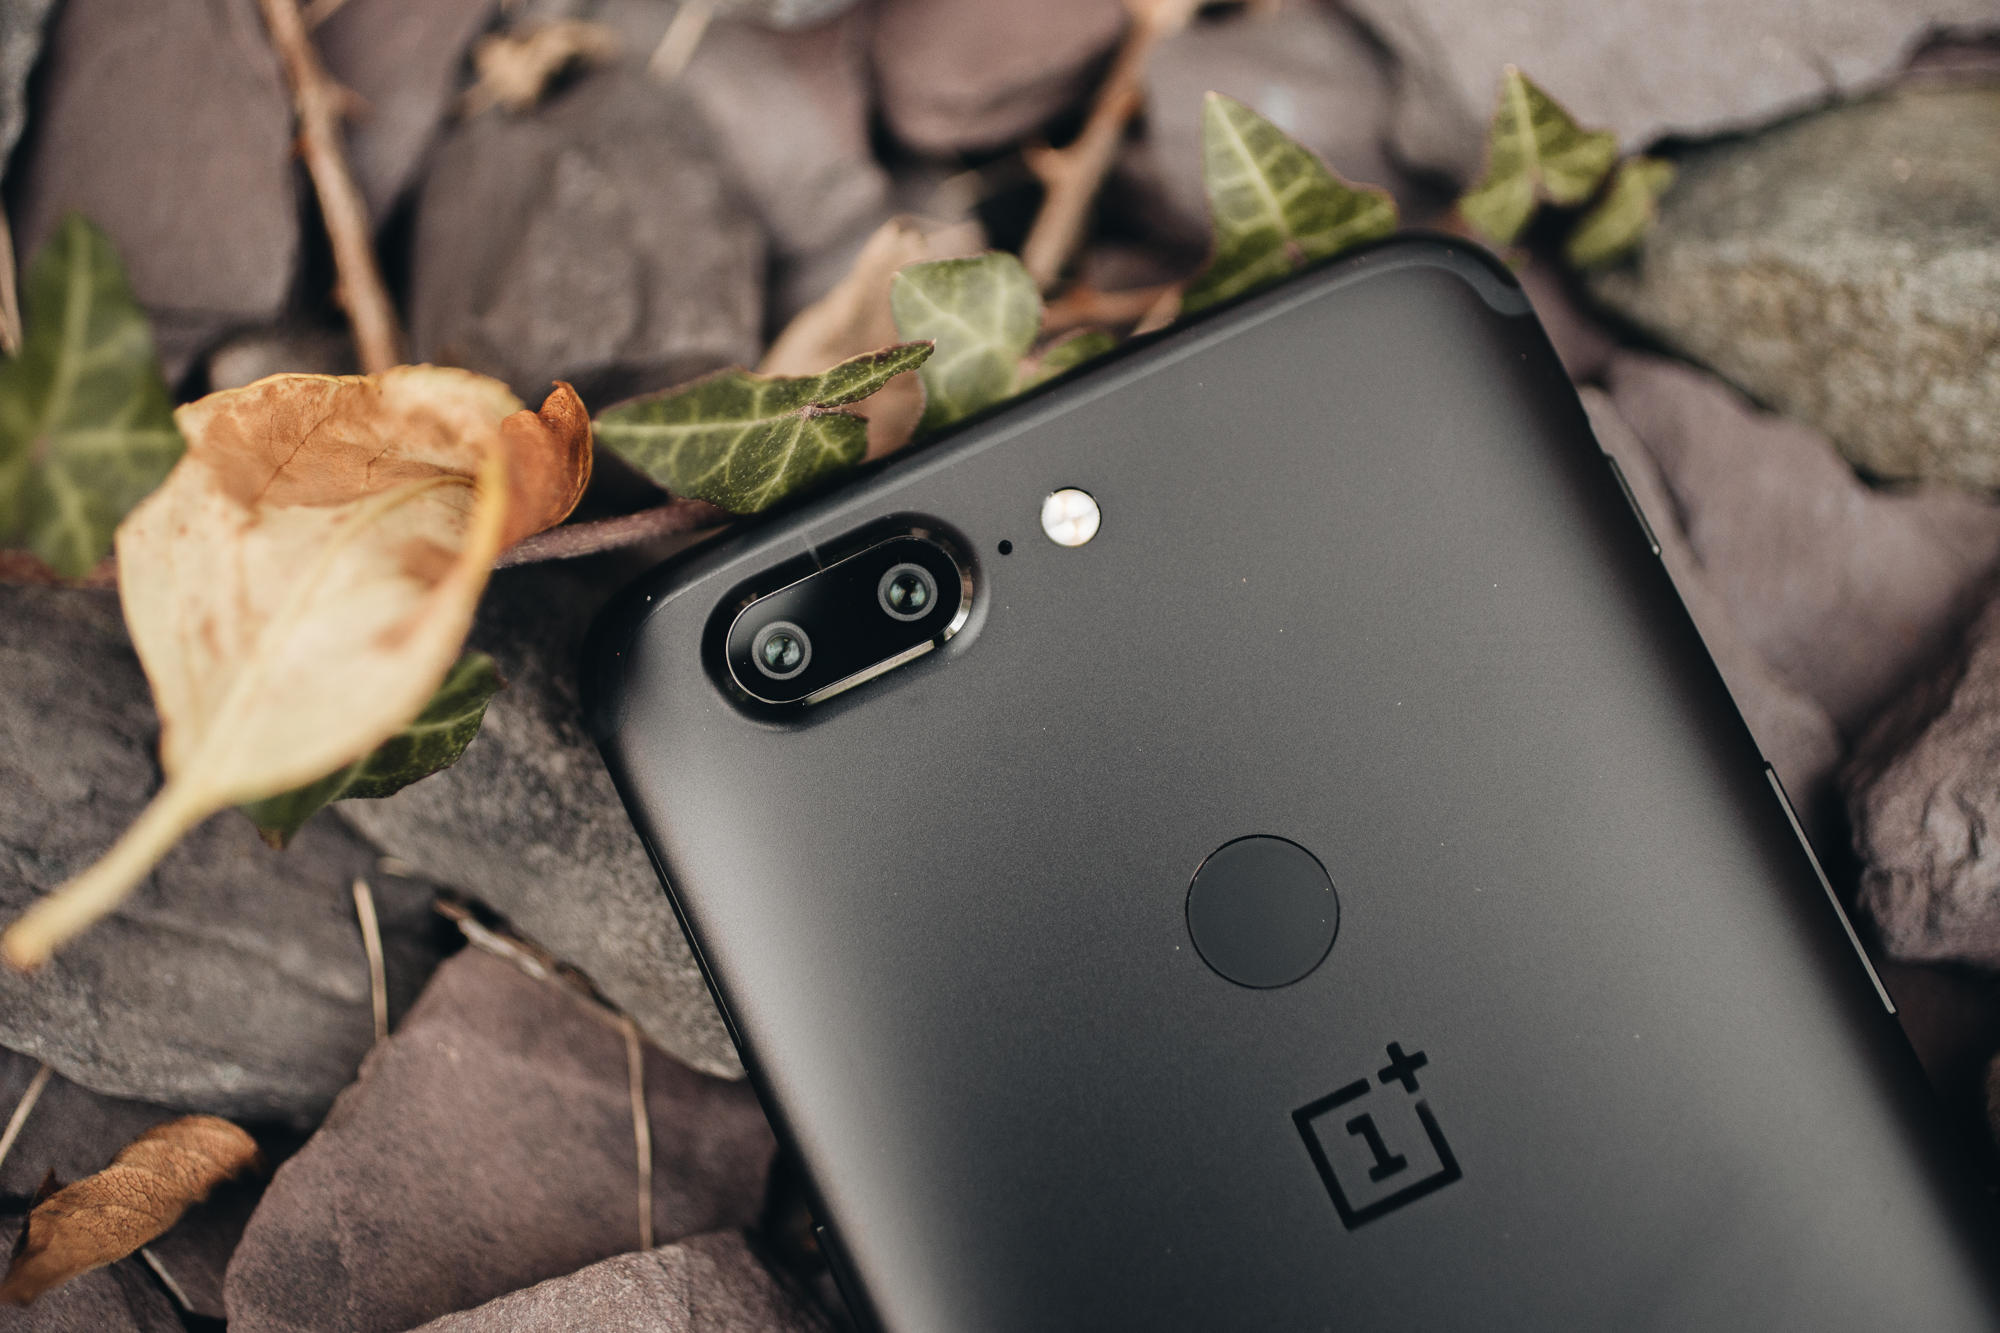 oneplus-5t-product-4